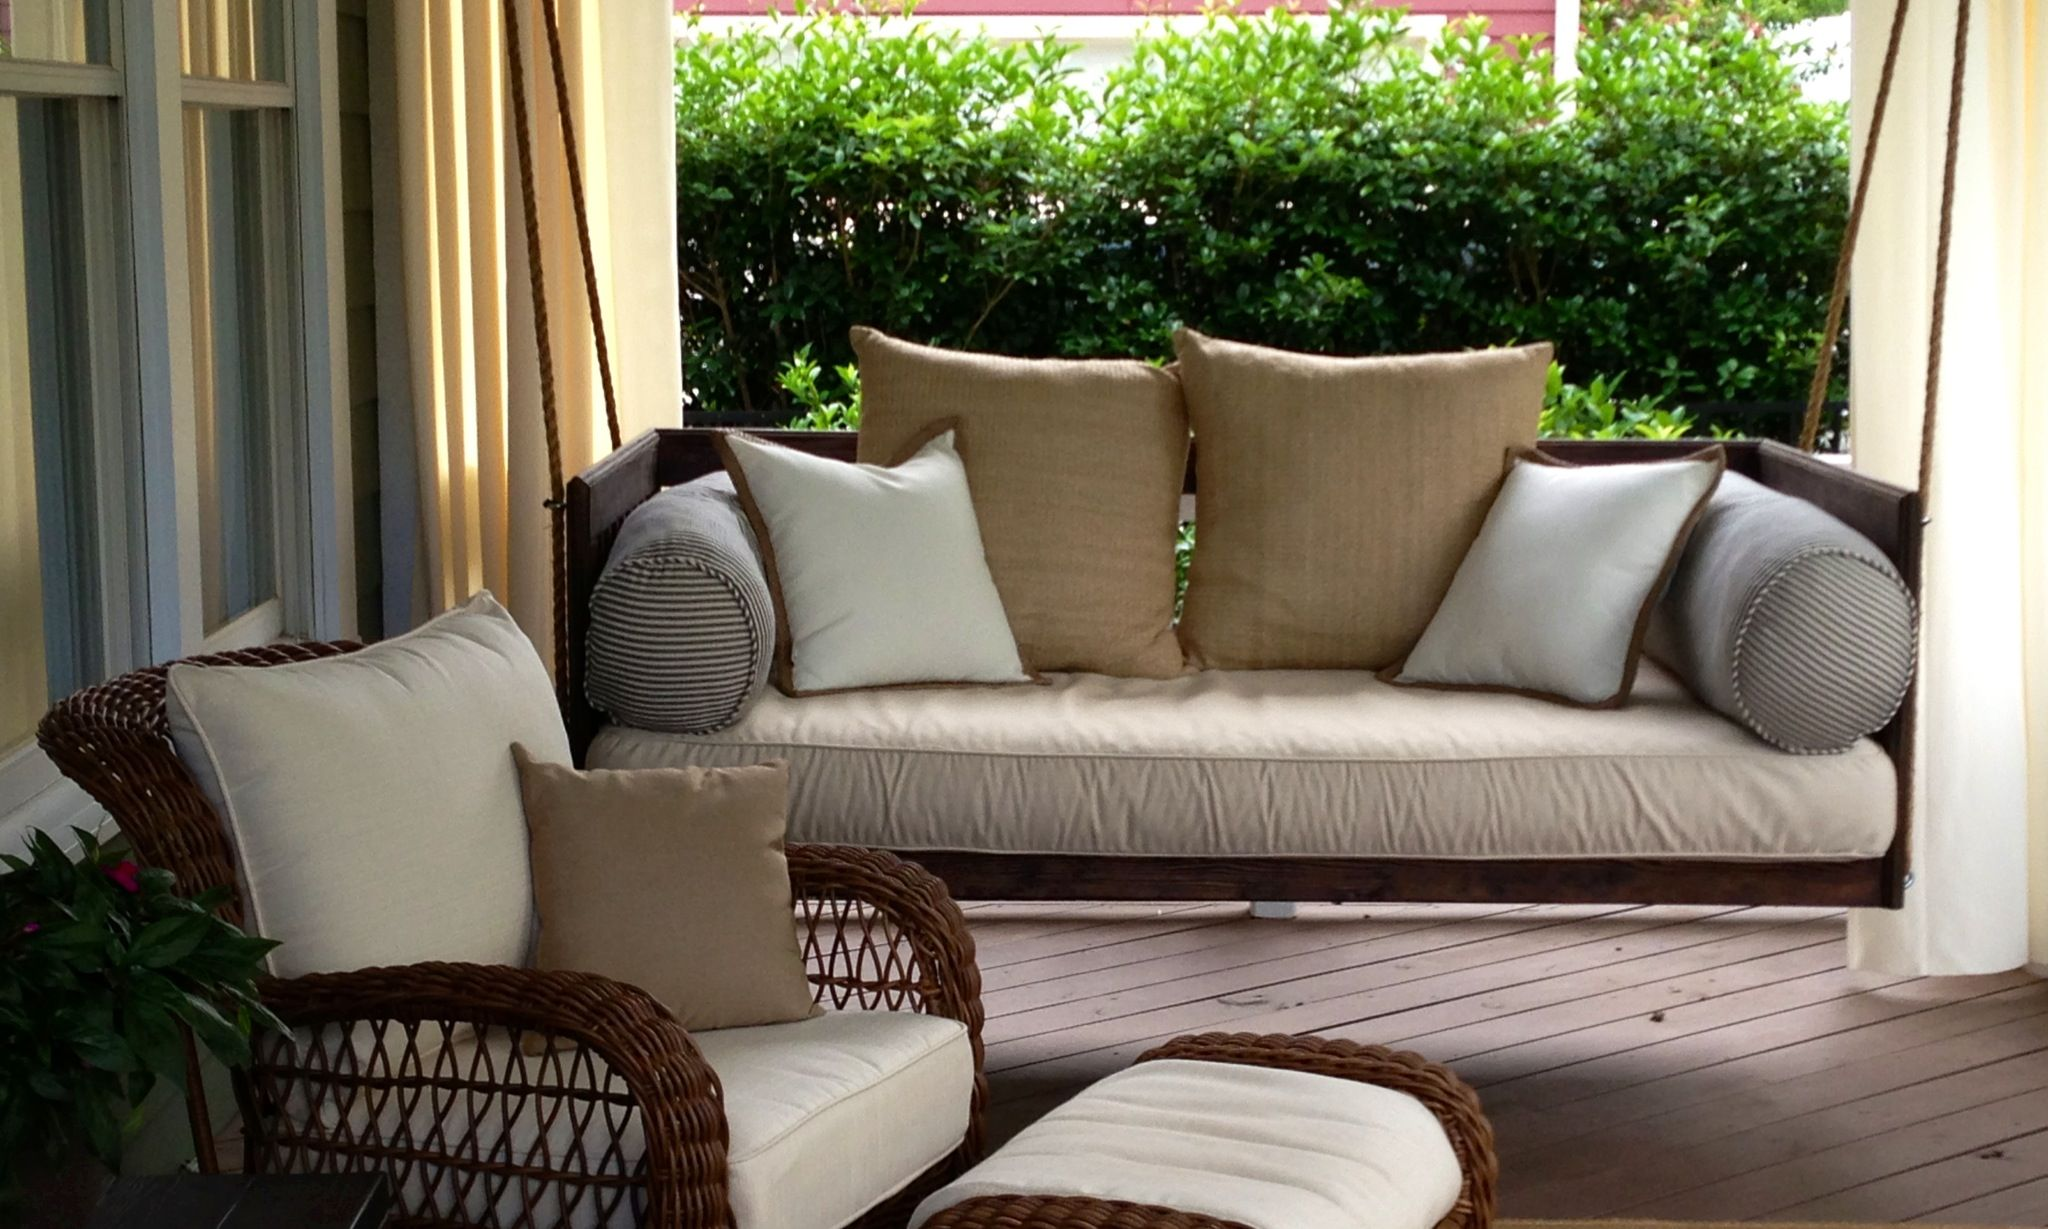 swinging porch classical beds glider picture 2 048—1 229 pixels